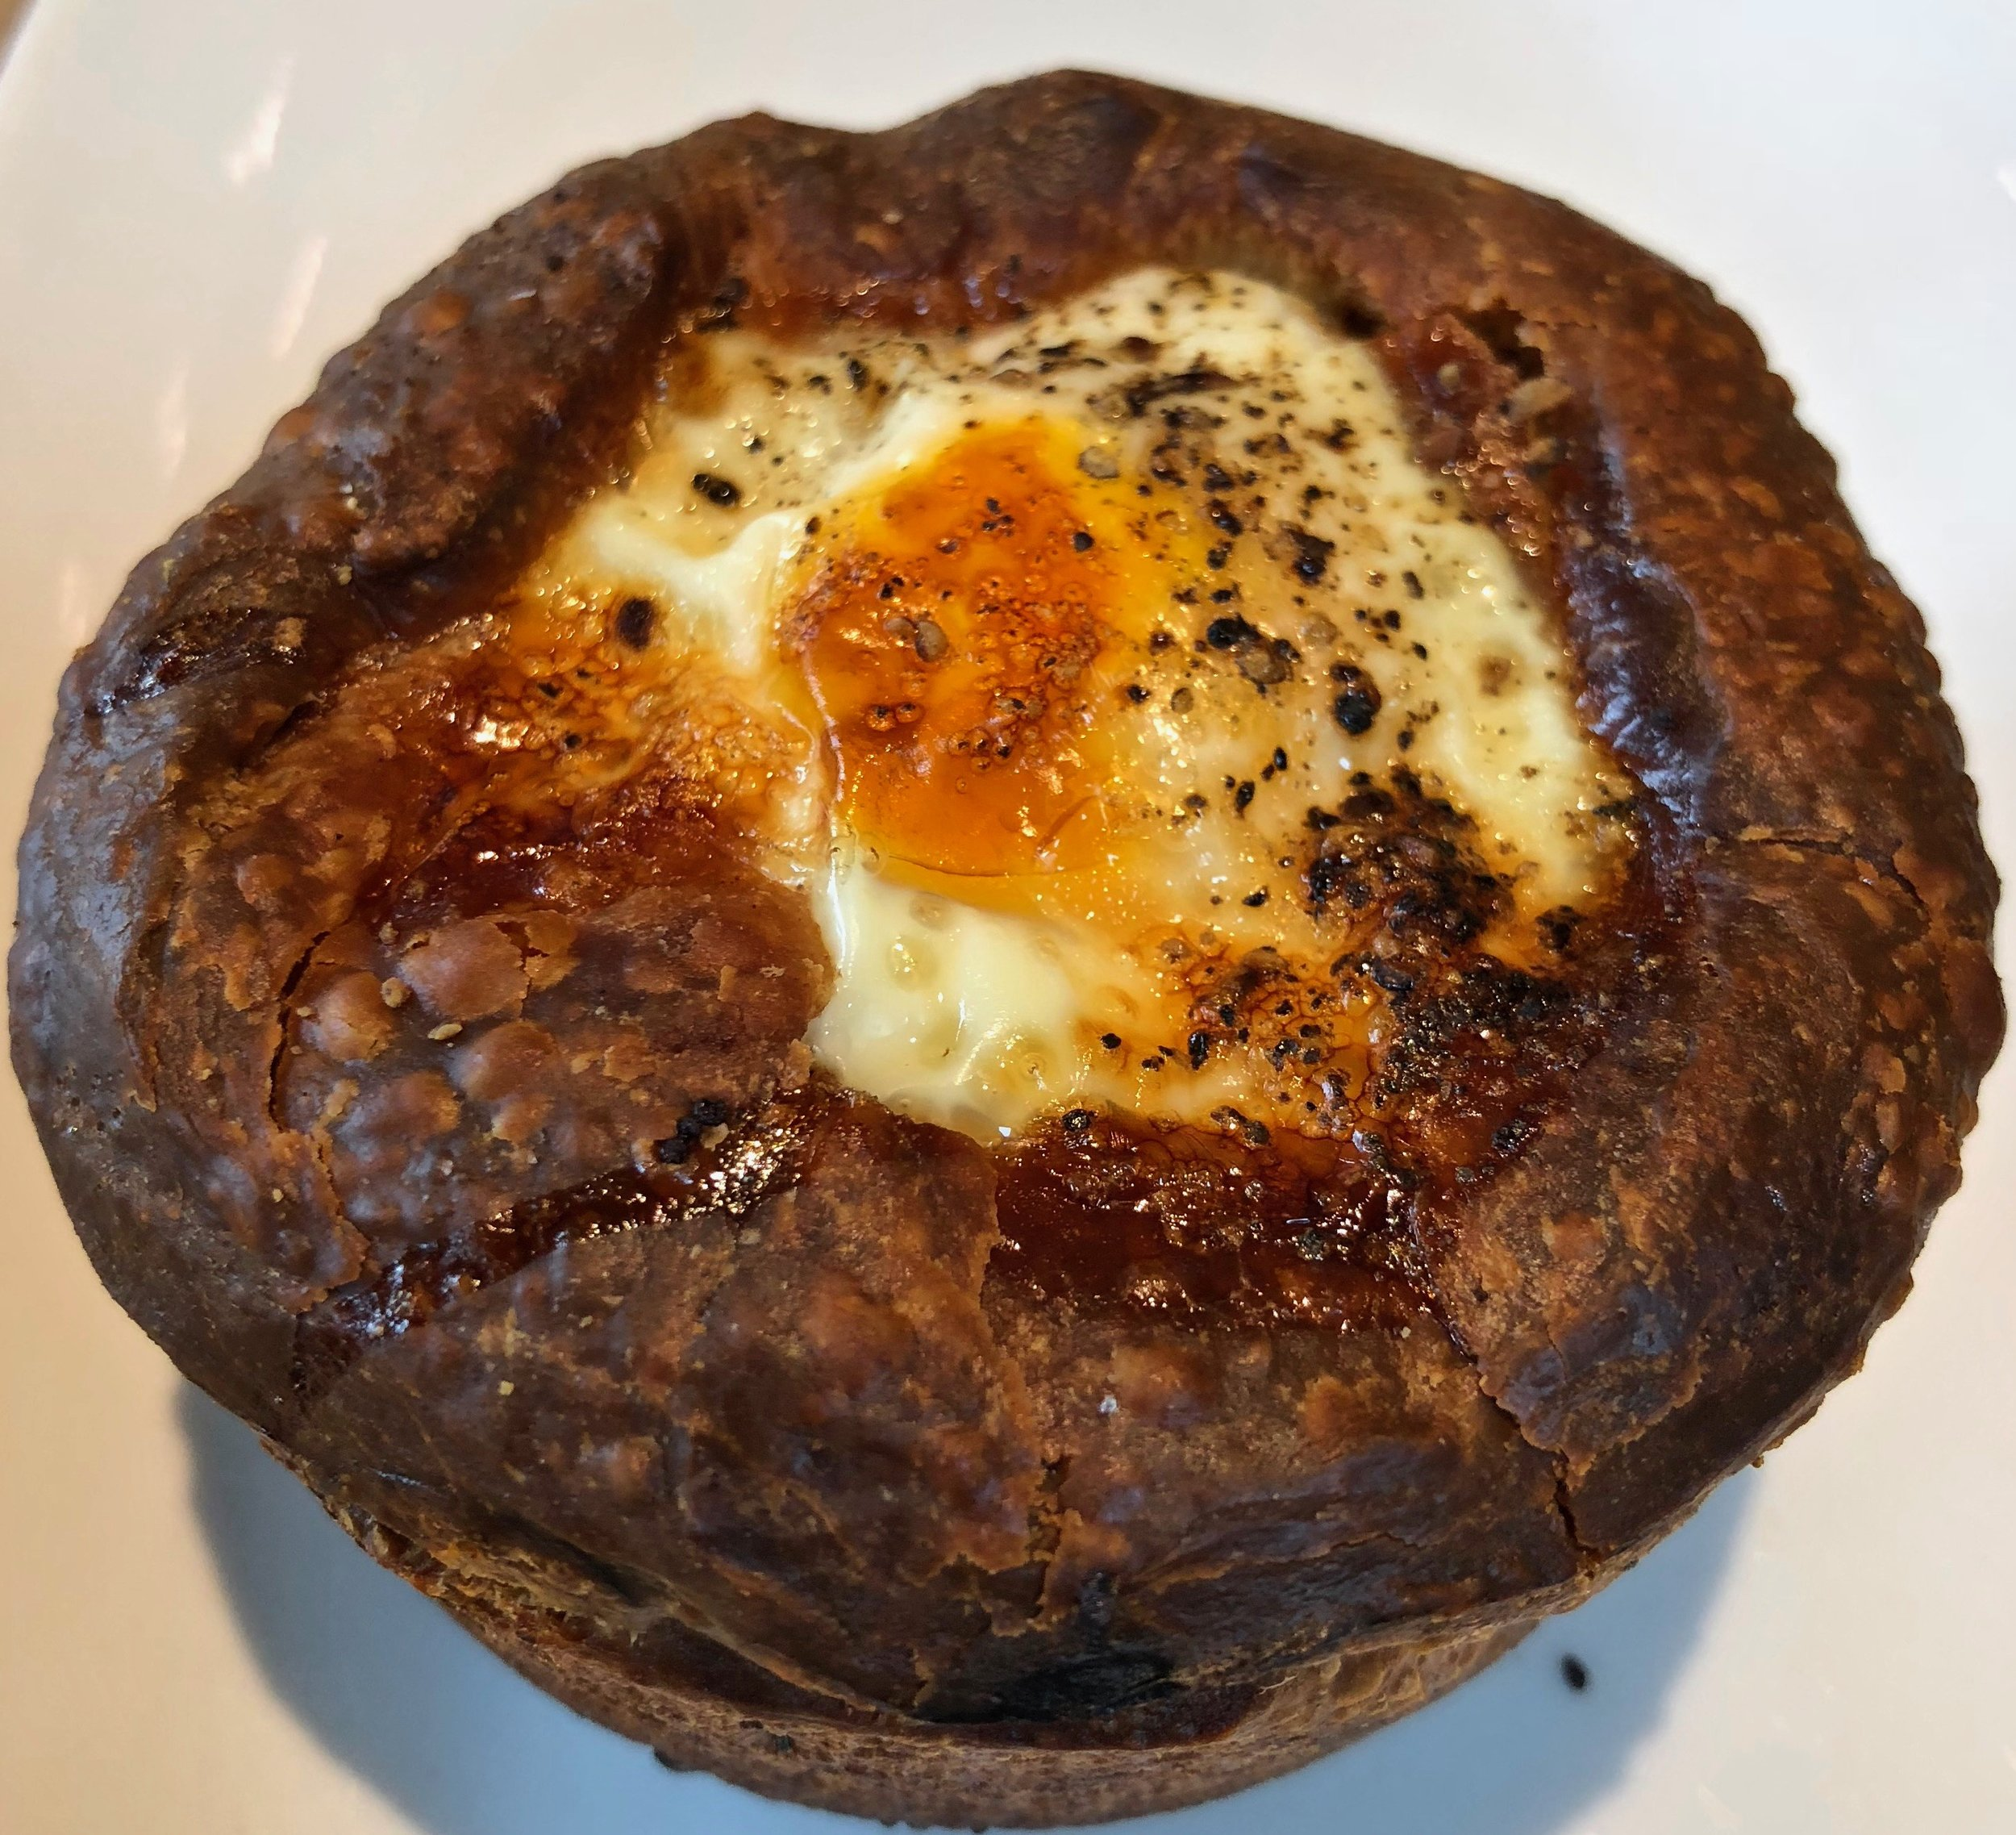 top side of egg baked in bread